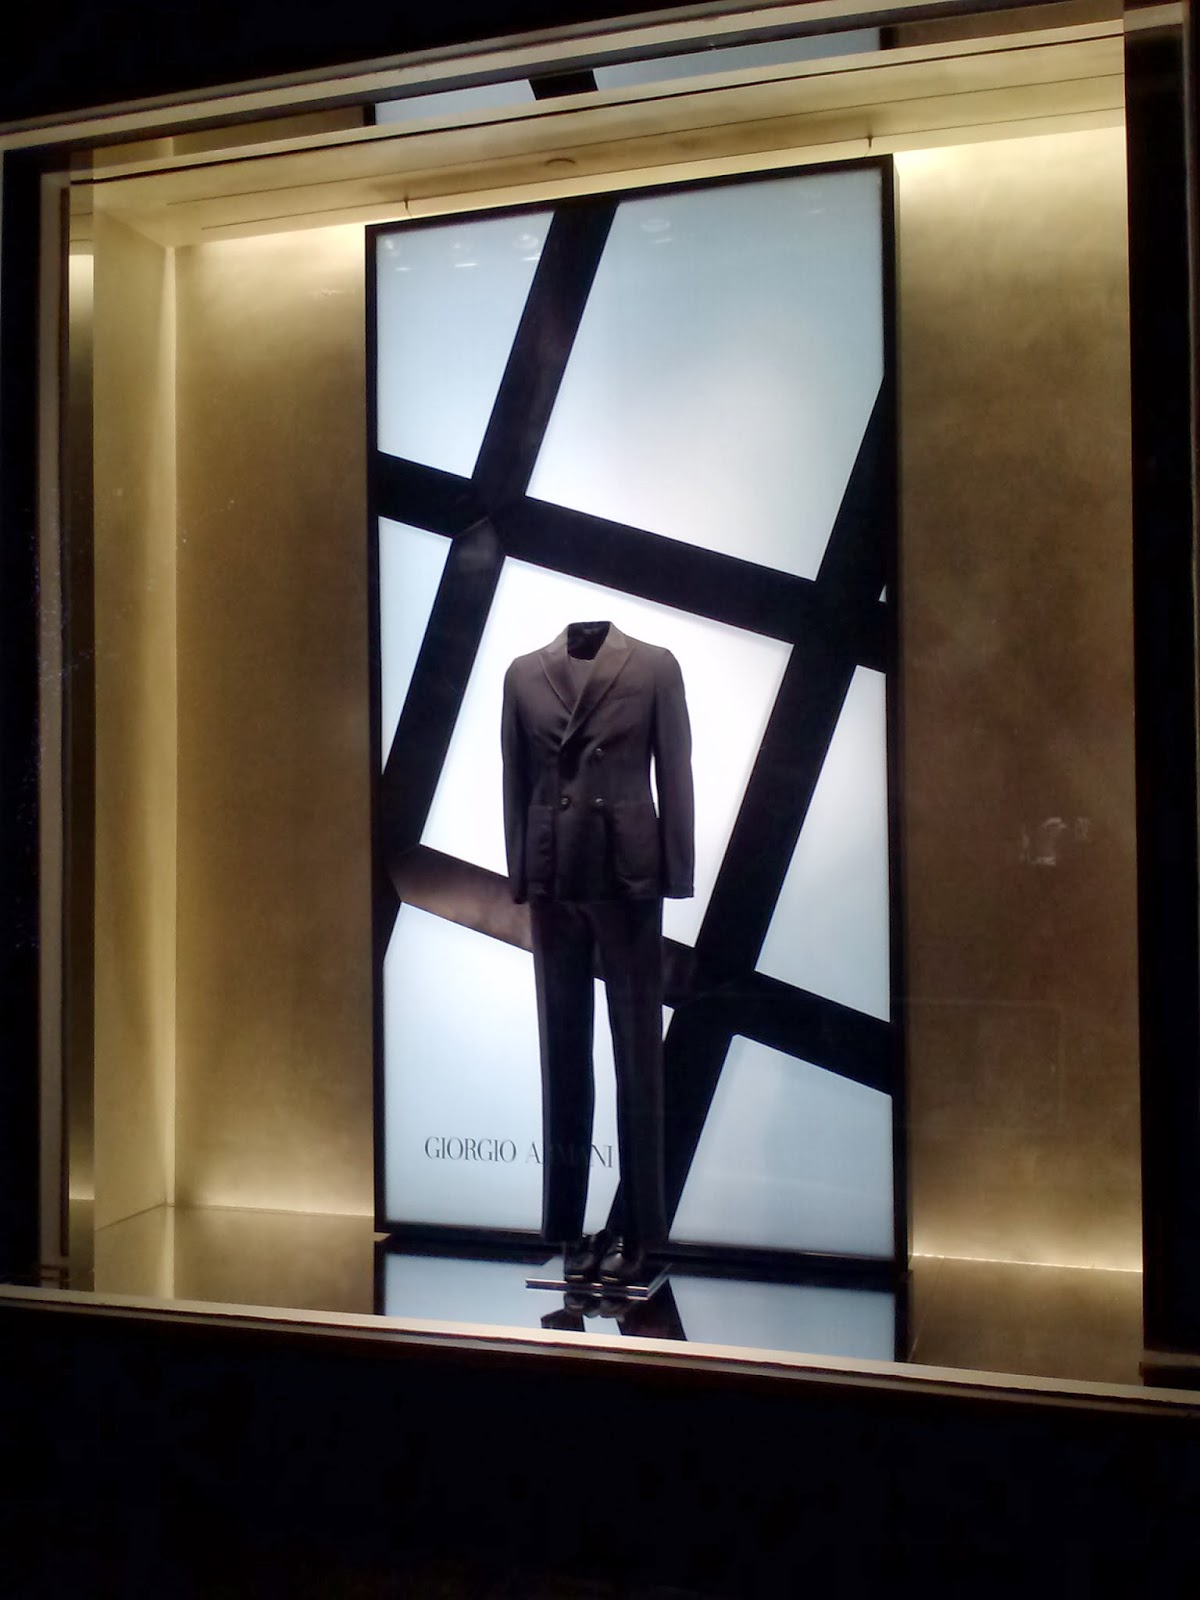 lightbox window backdrops produced and installed for Armani 5th Avenue.